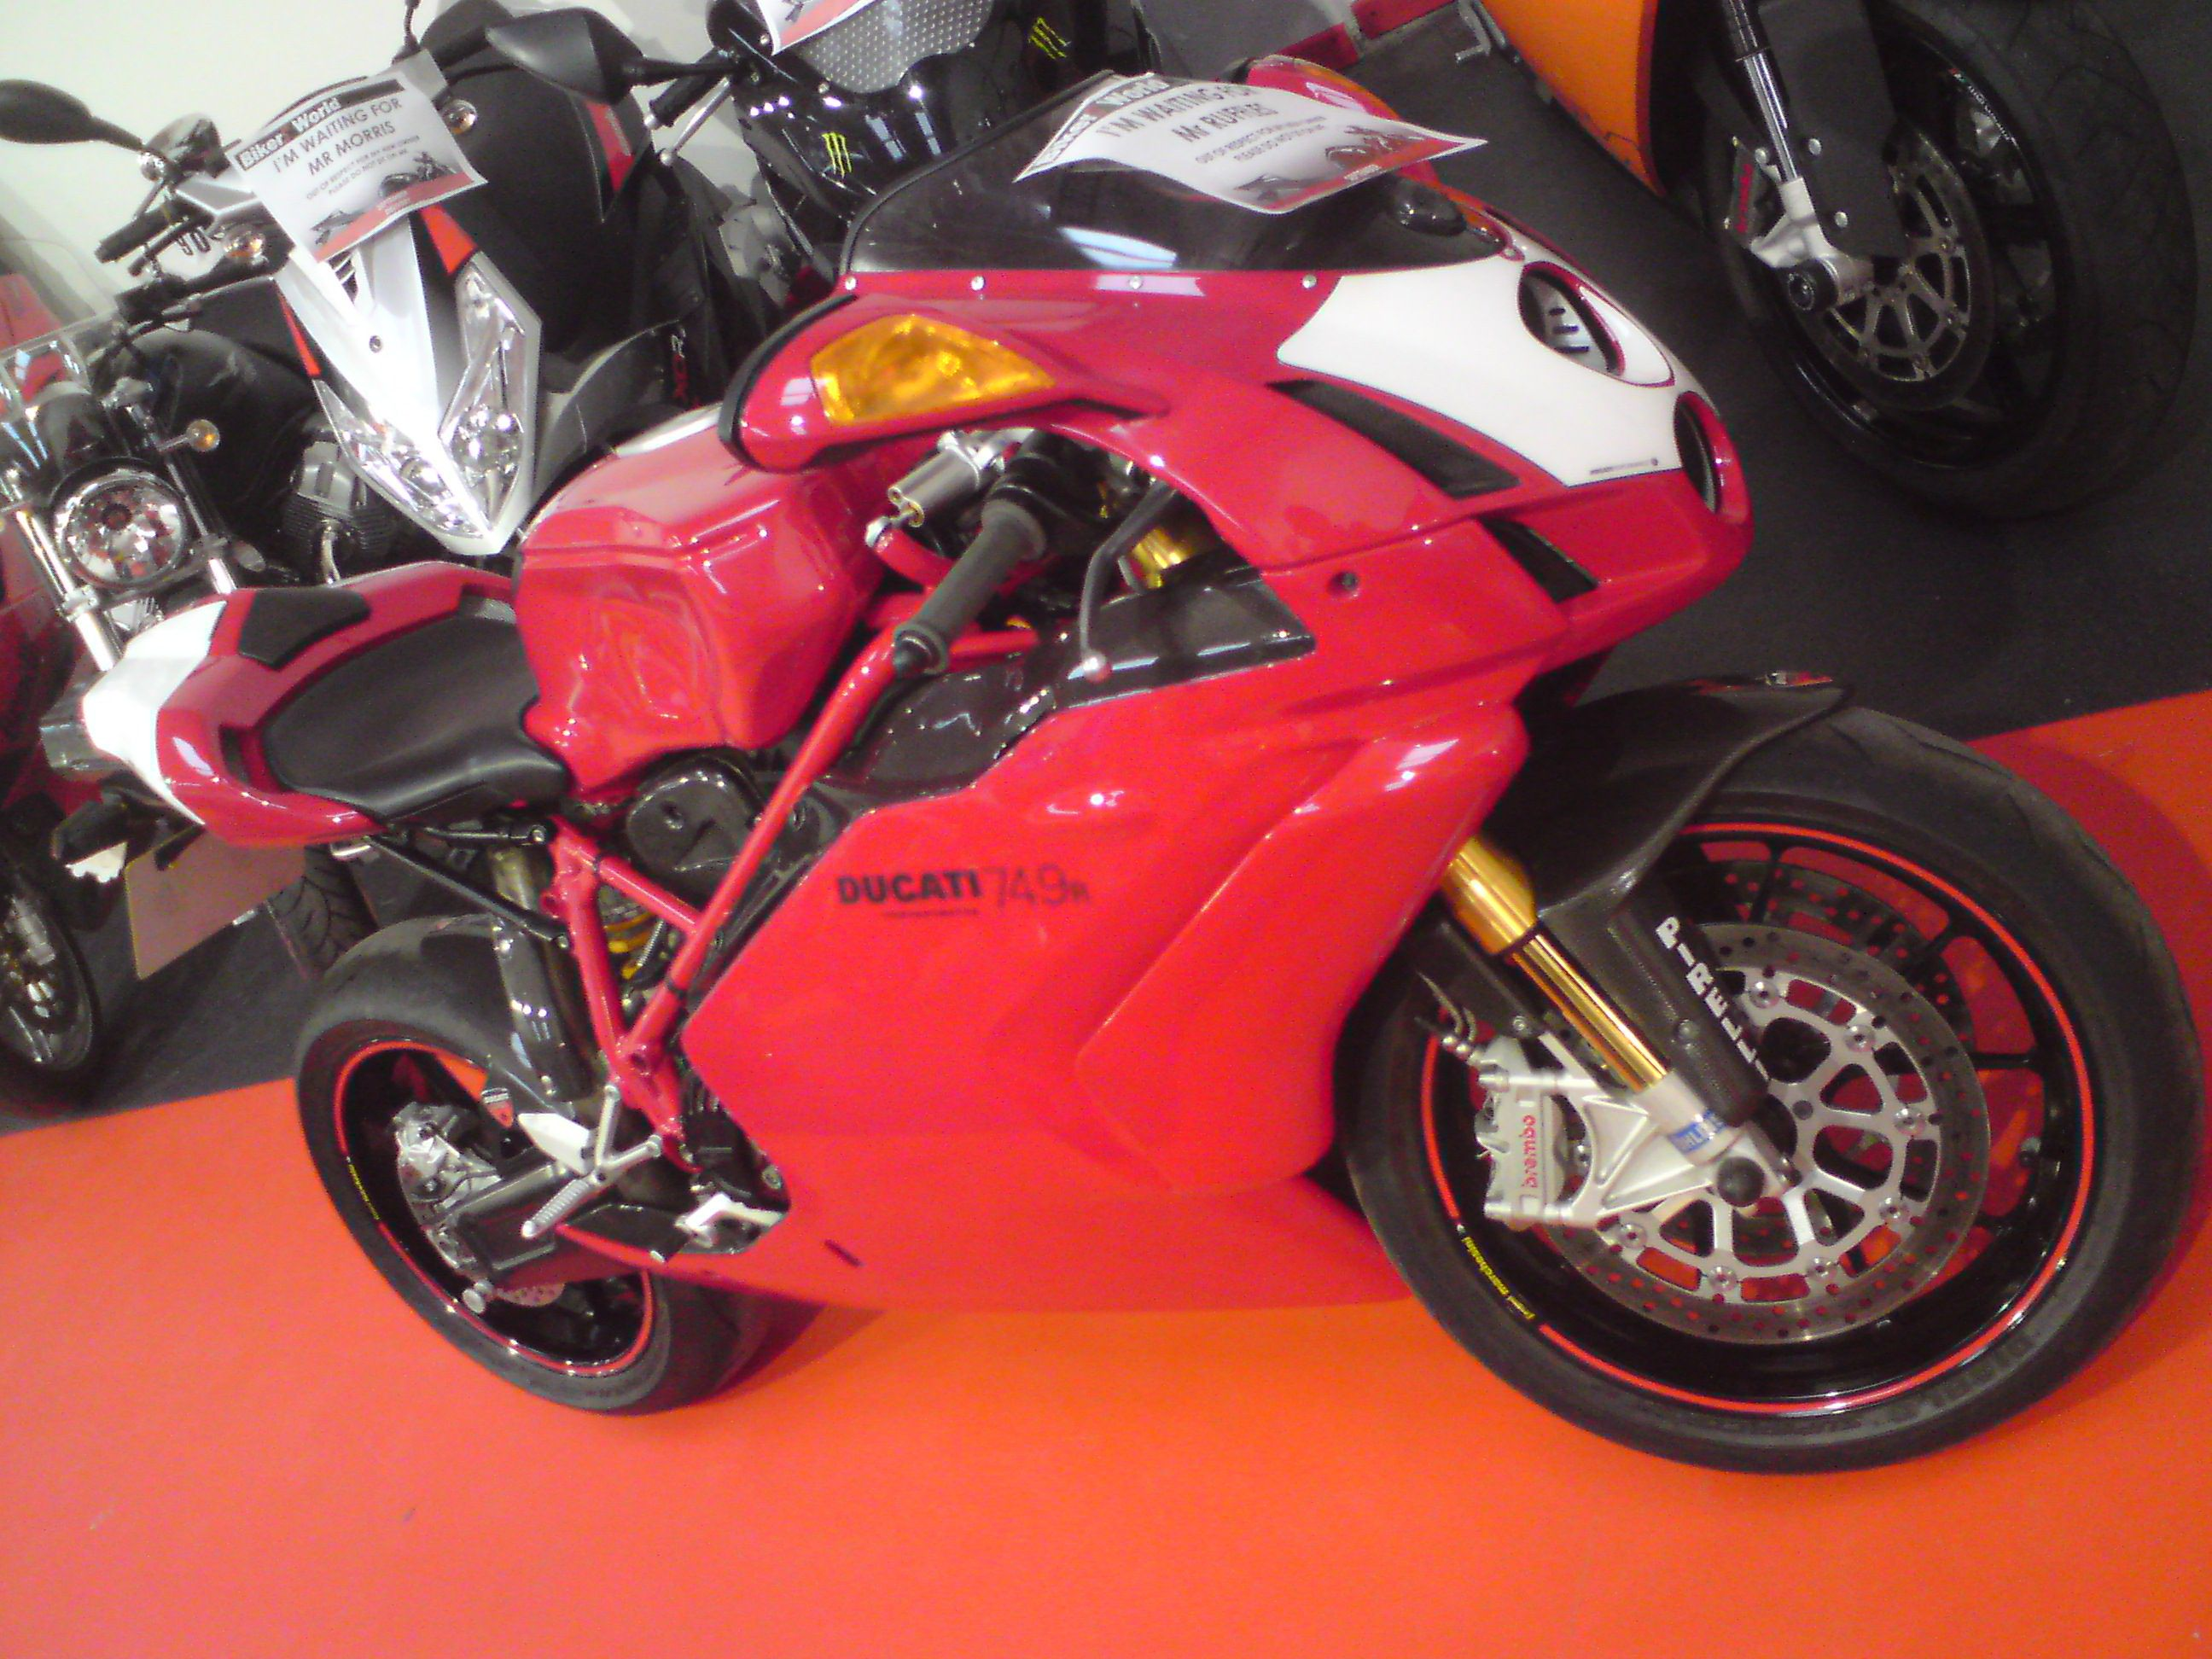 hight resolution of my old ducati 749r 2004 model full carbon not to be dropped